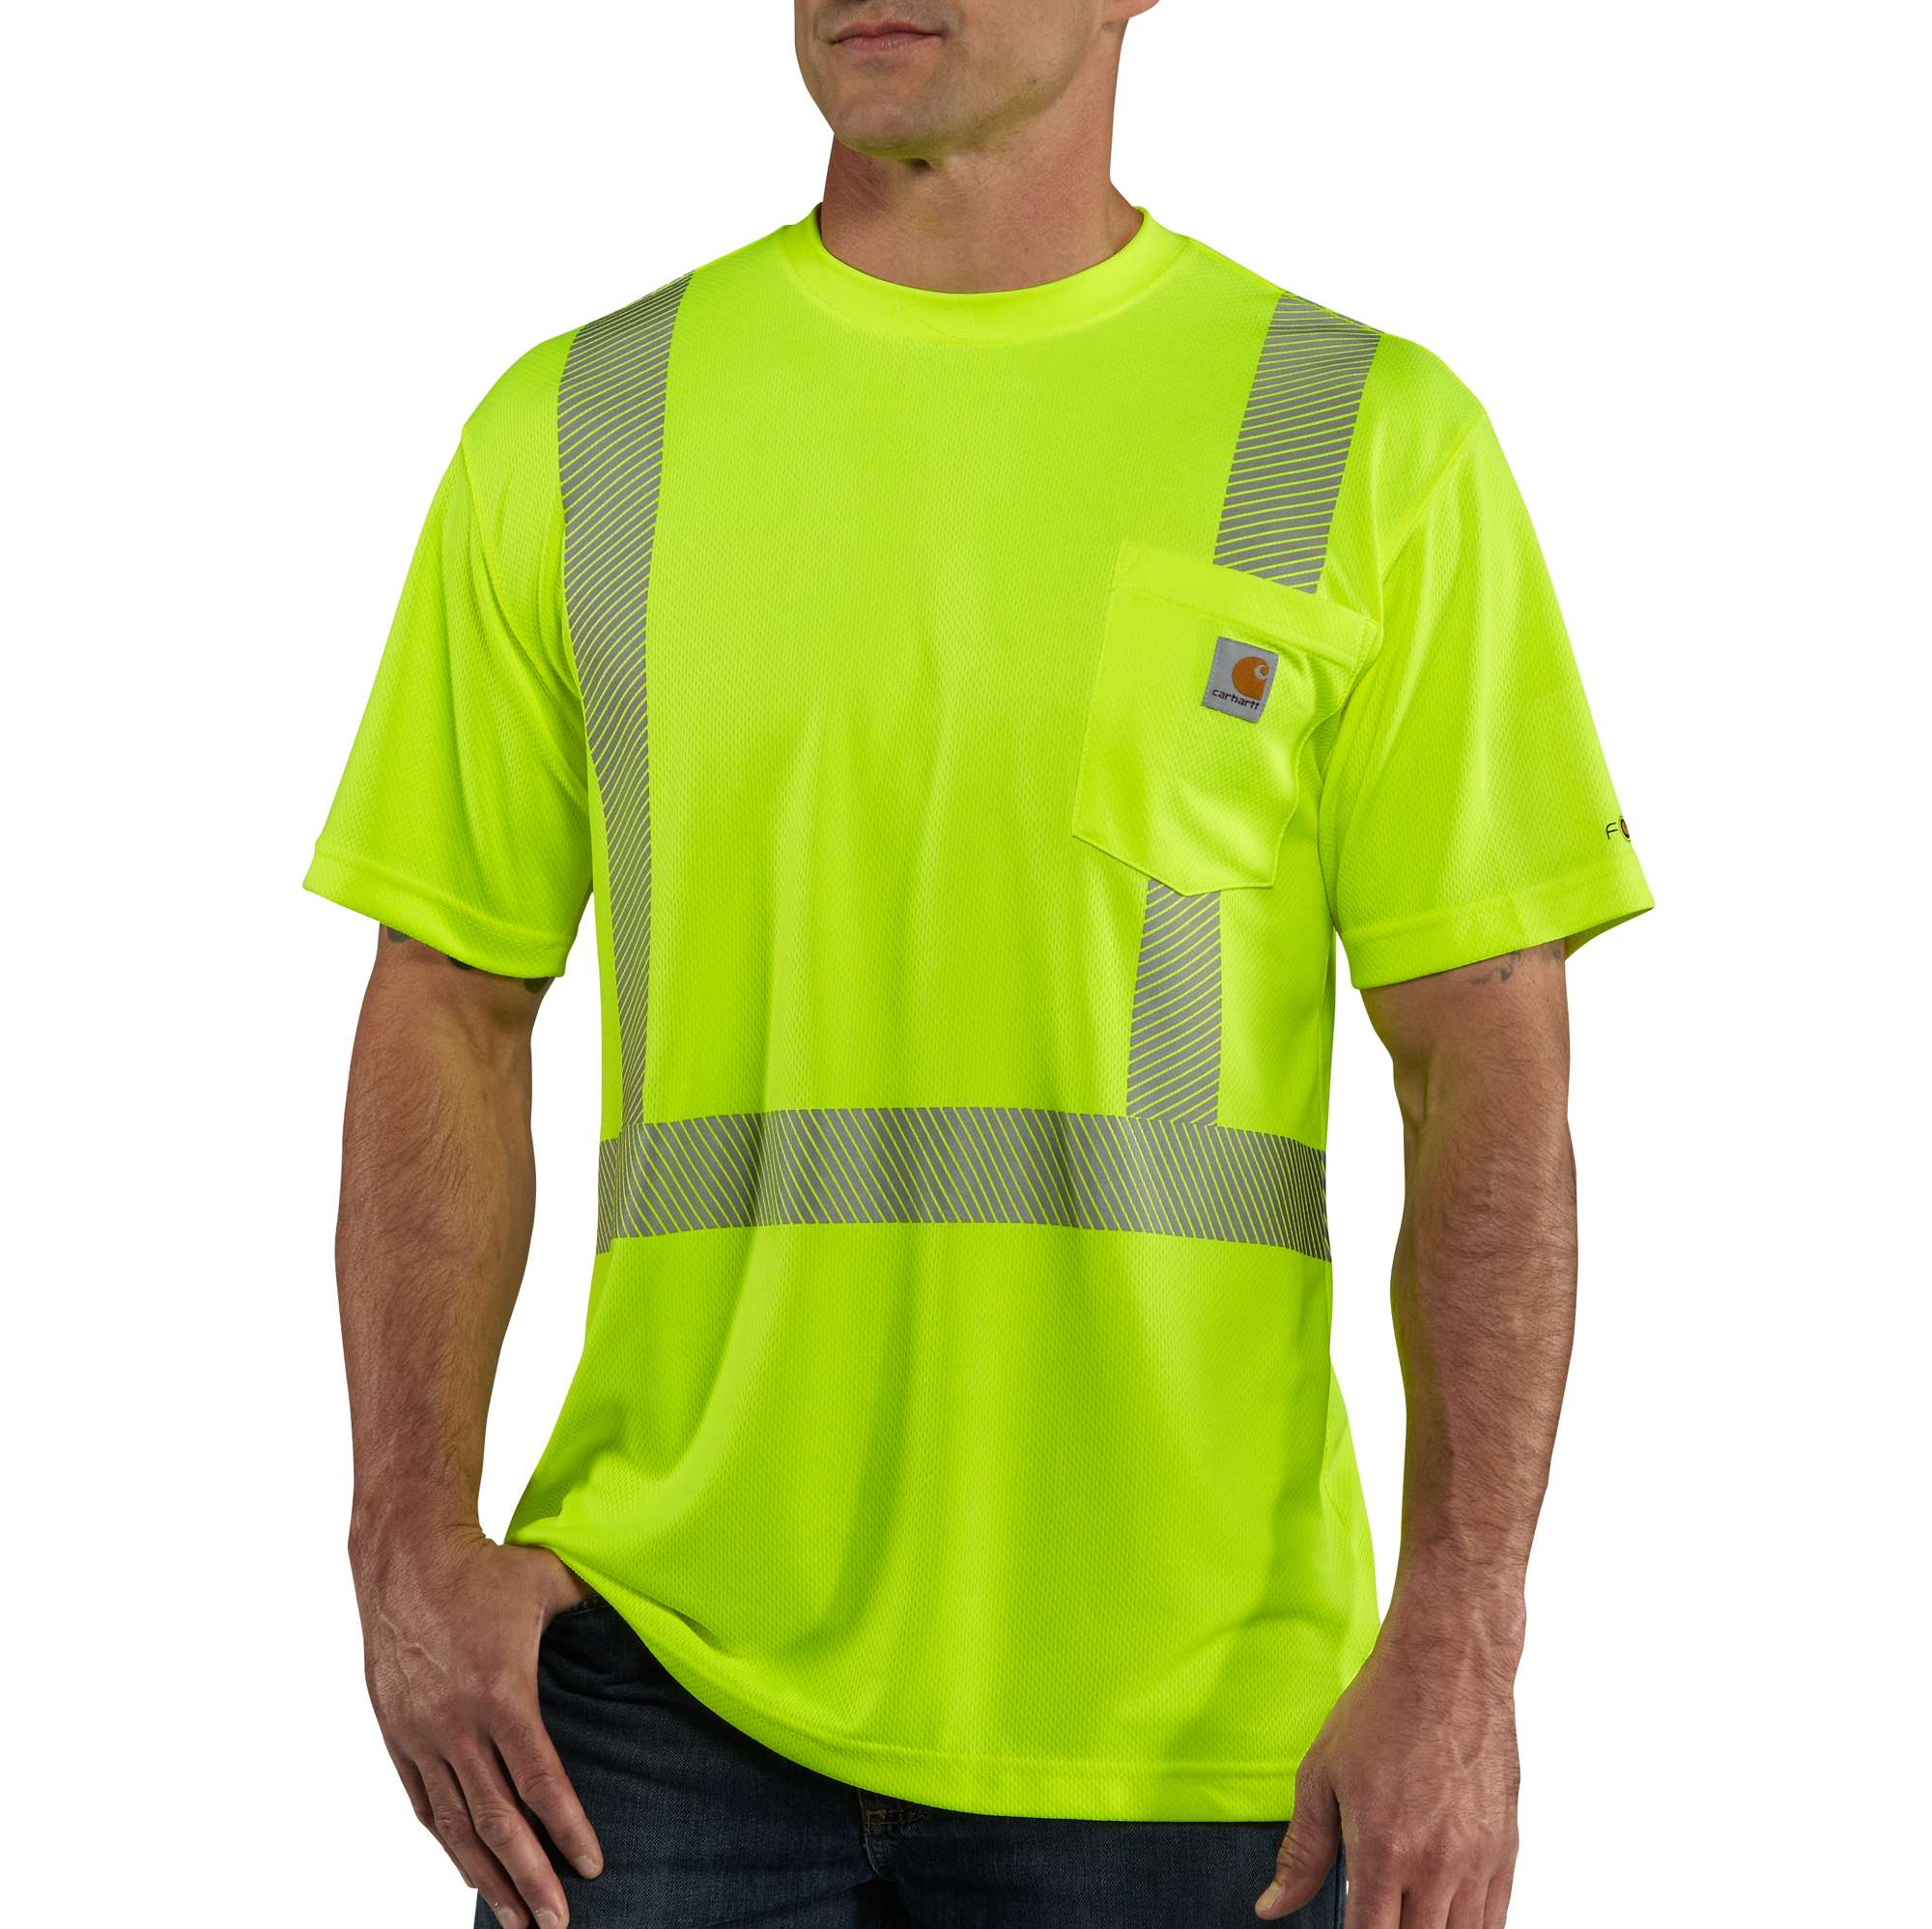 Carhartt Carhartt Force High-visibility Short-sleeve Class 2 T-shirt